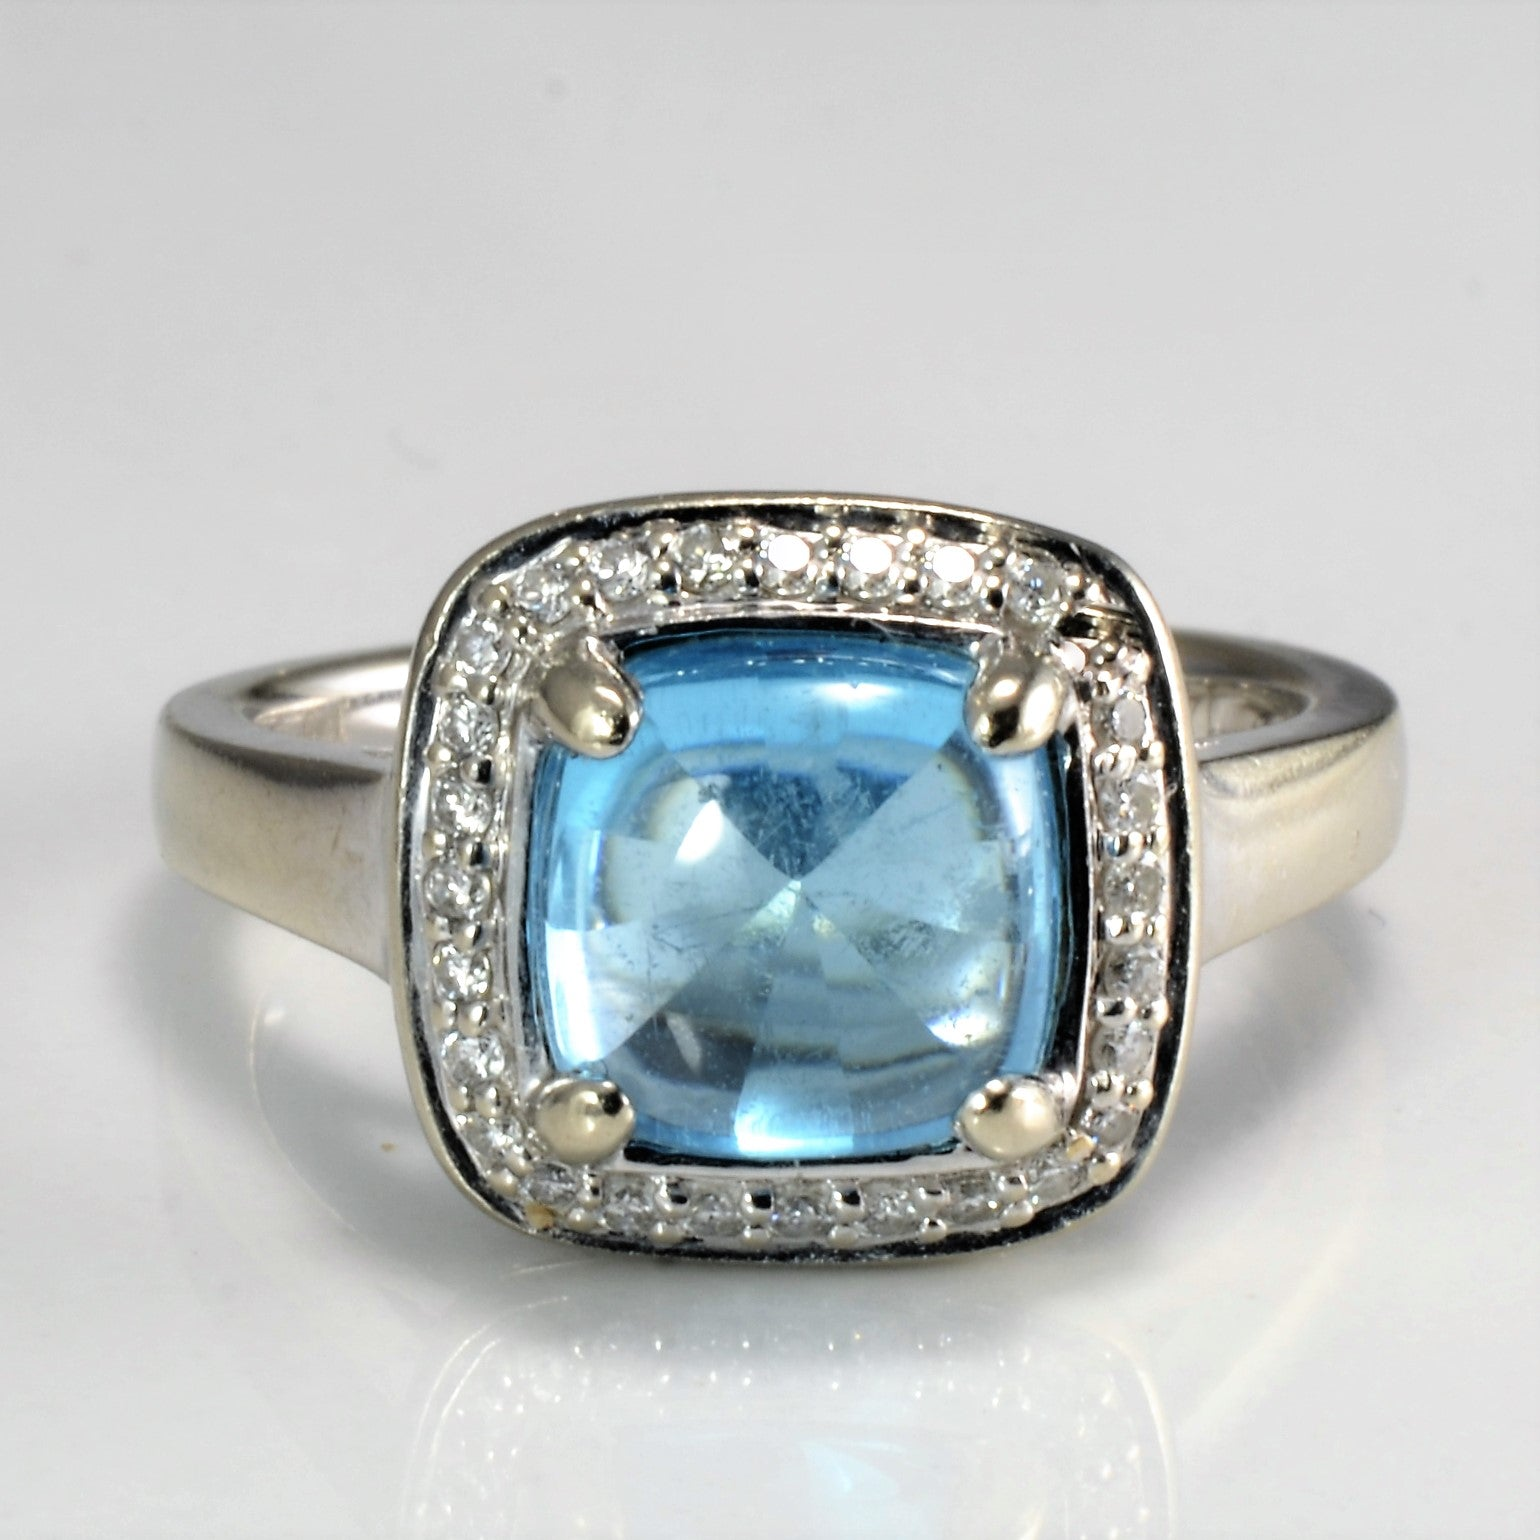 Blue Topaz with Diamond Accent Ring | 0.14 ctw SZ 7 |